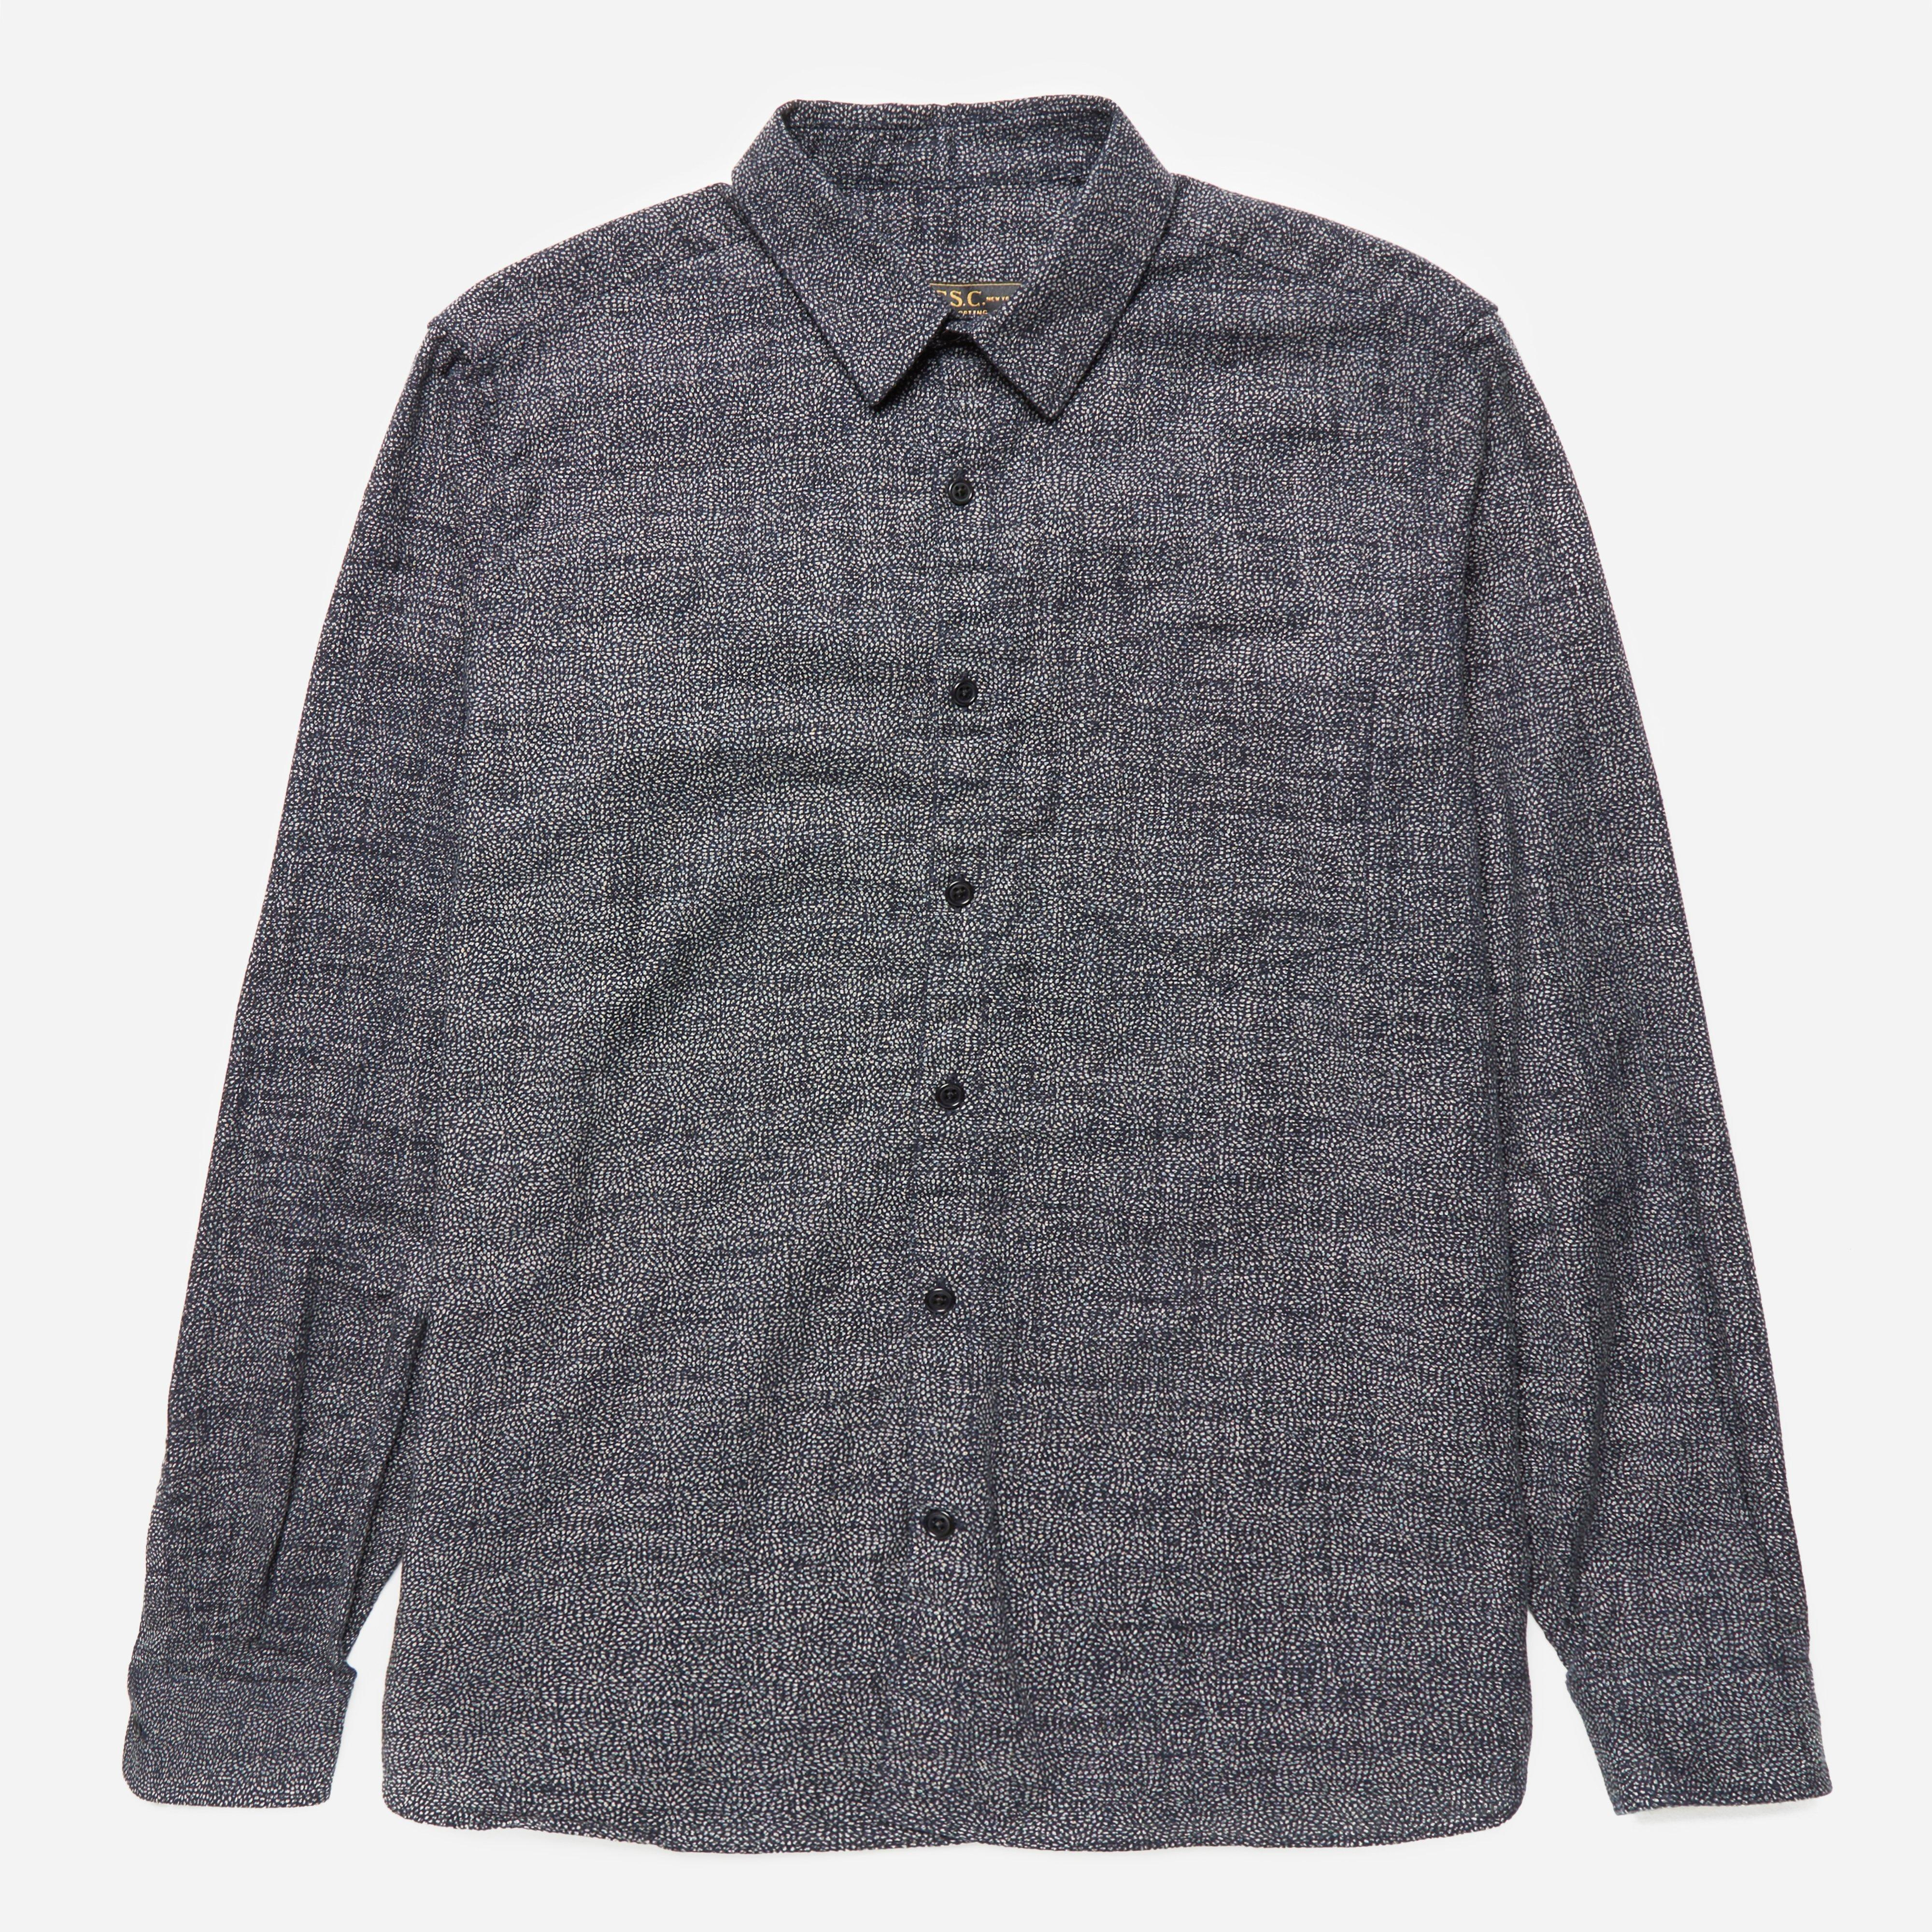 Freemans Sporting Club CS1 Shirt